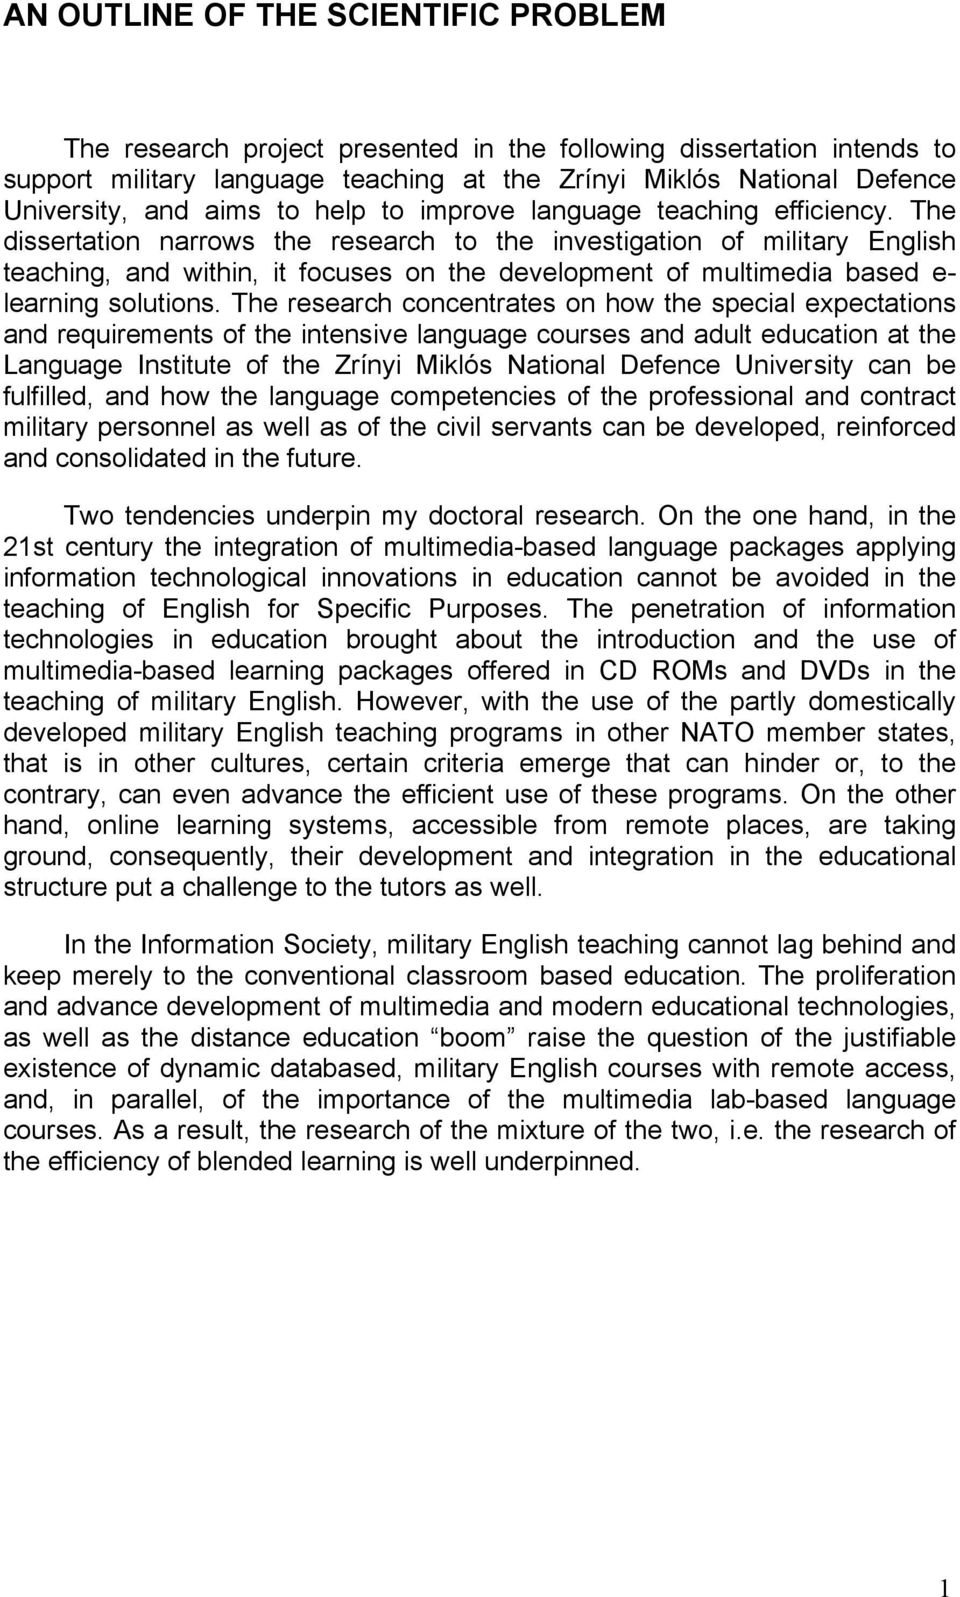 The dissertation narrows the research to the investigation of military English teaching, and within, it focuses on the development of multimedia based e- learning solutions.